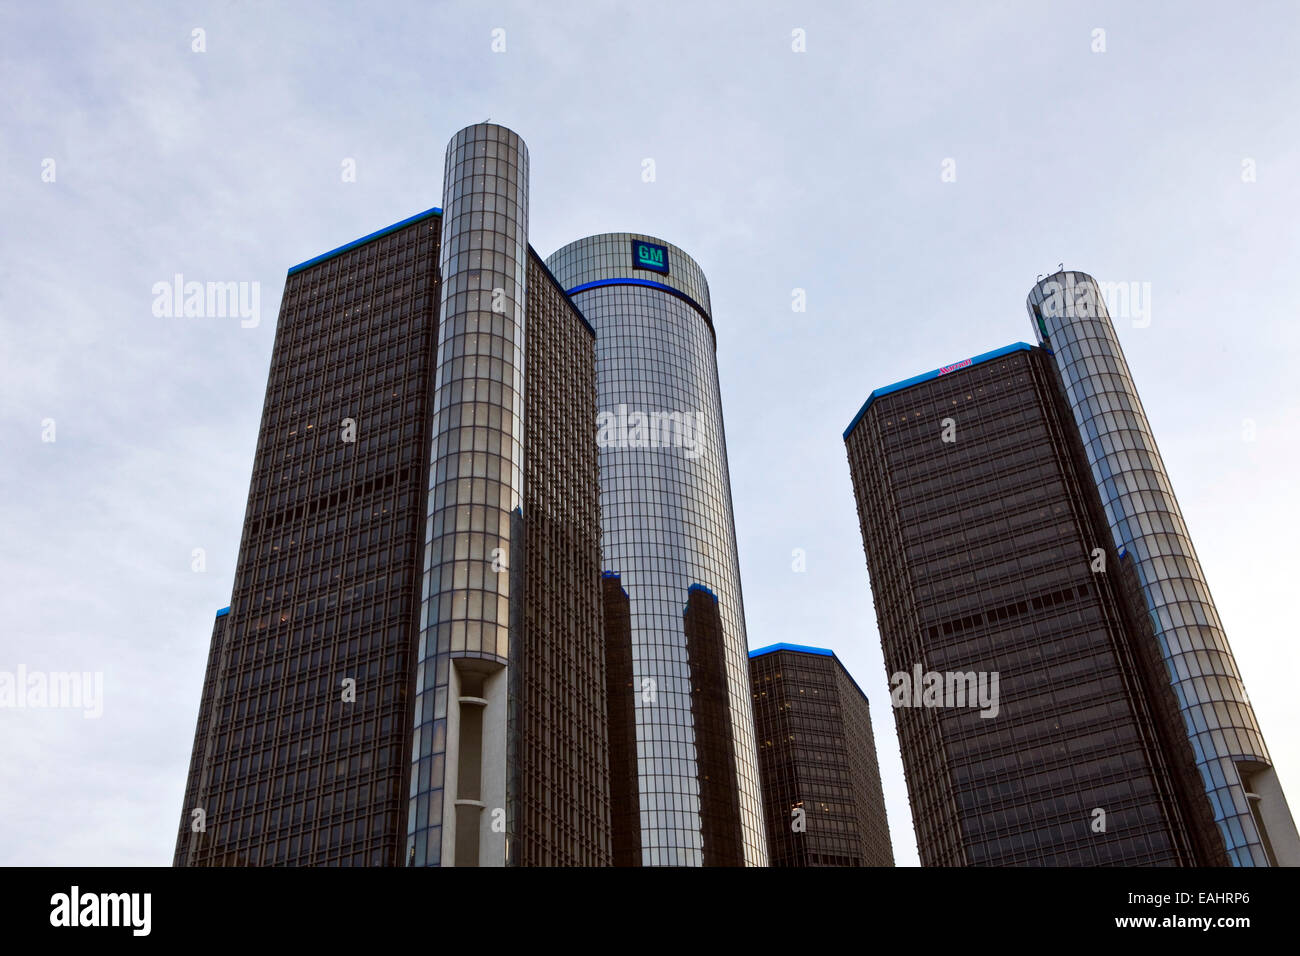 A view of the General Motors headquarters in downtown Detroit. - Stock Image